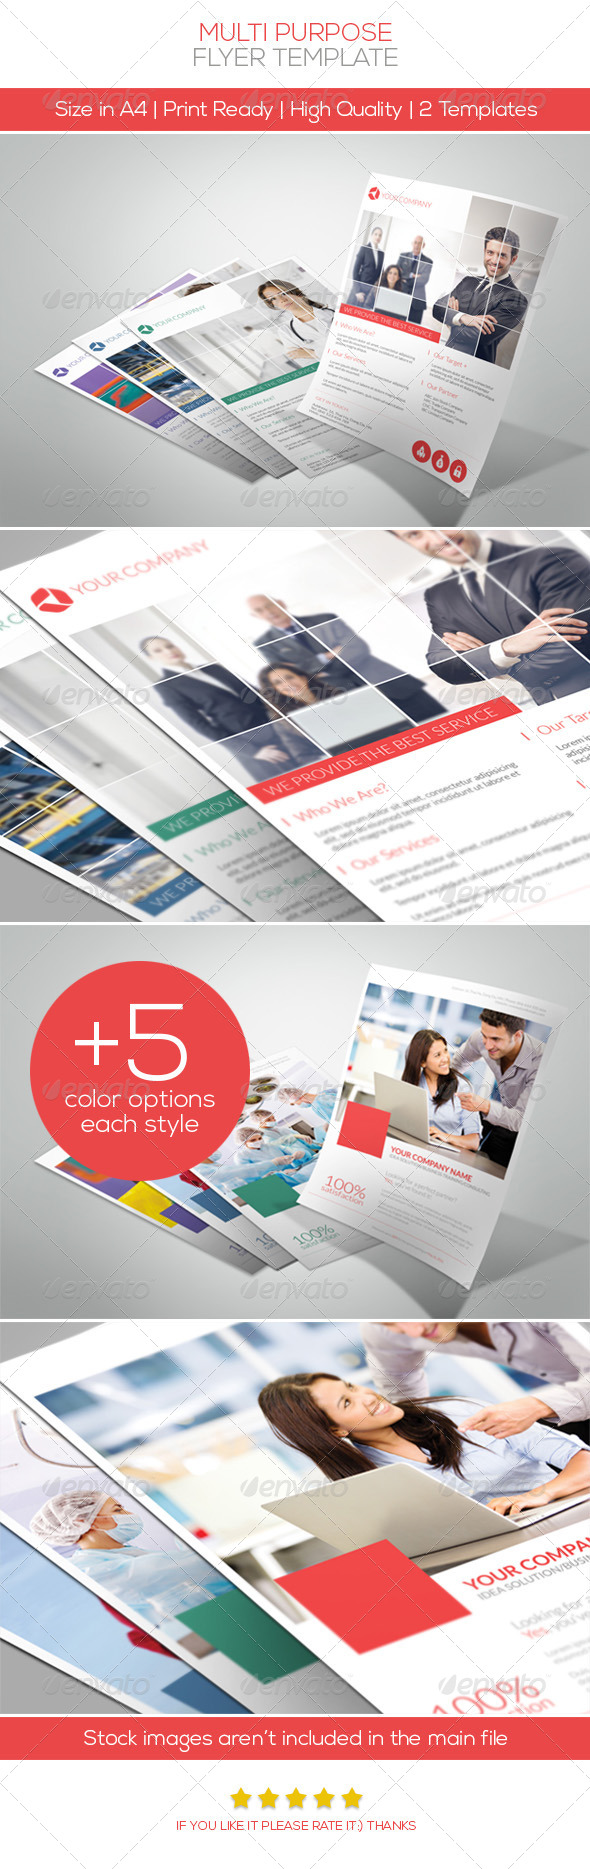 Multi Purpose Flyer Vol.2 - Corporate Flyers